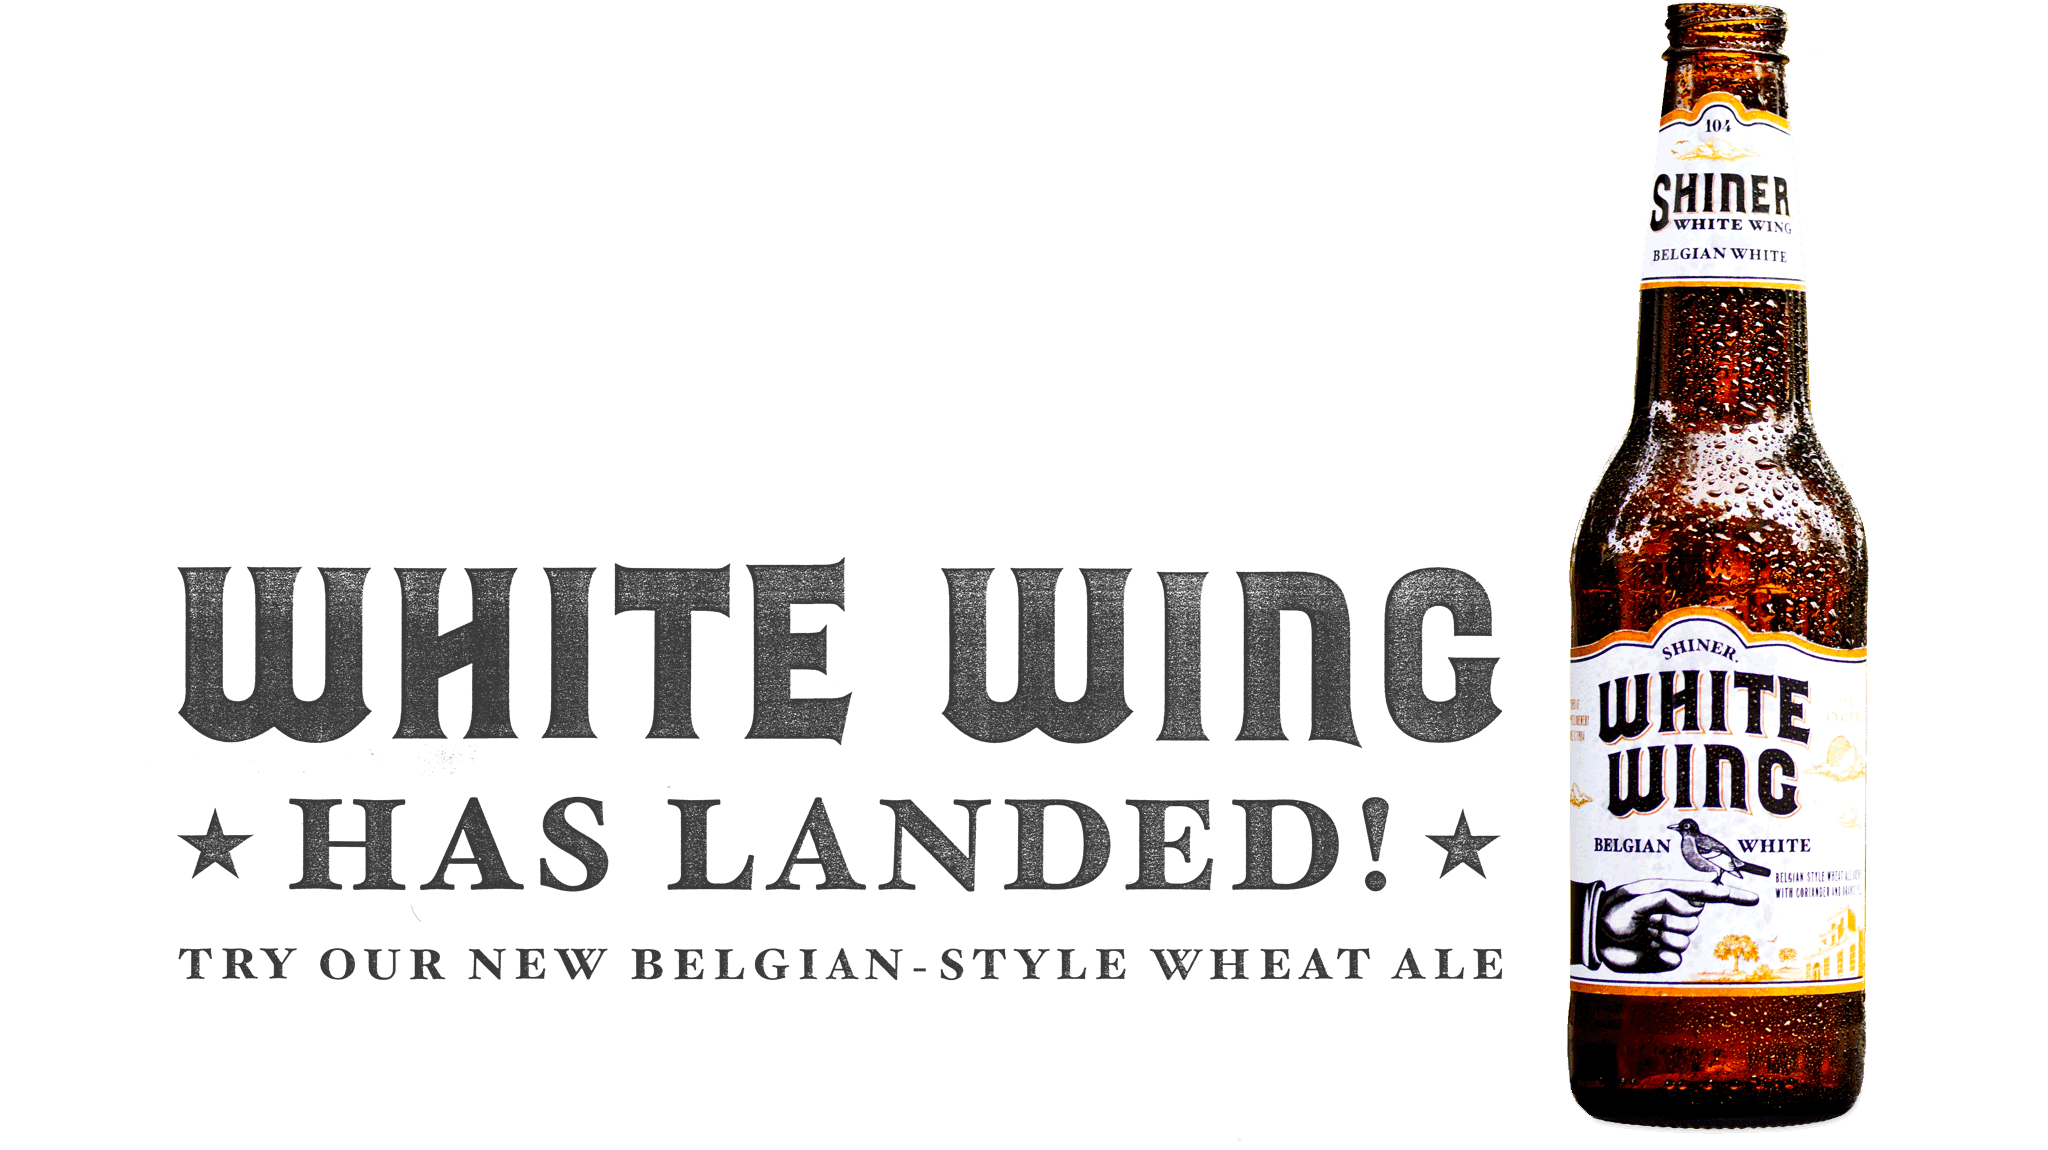 White Wing has landed. Try our new Belgian-style white ale.